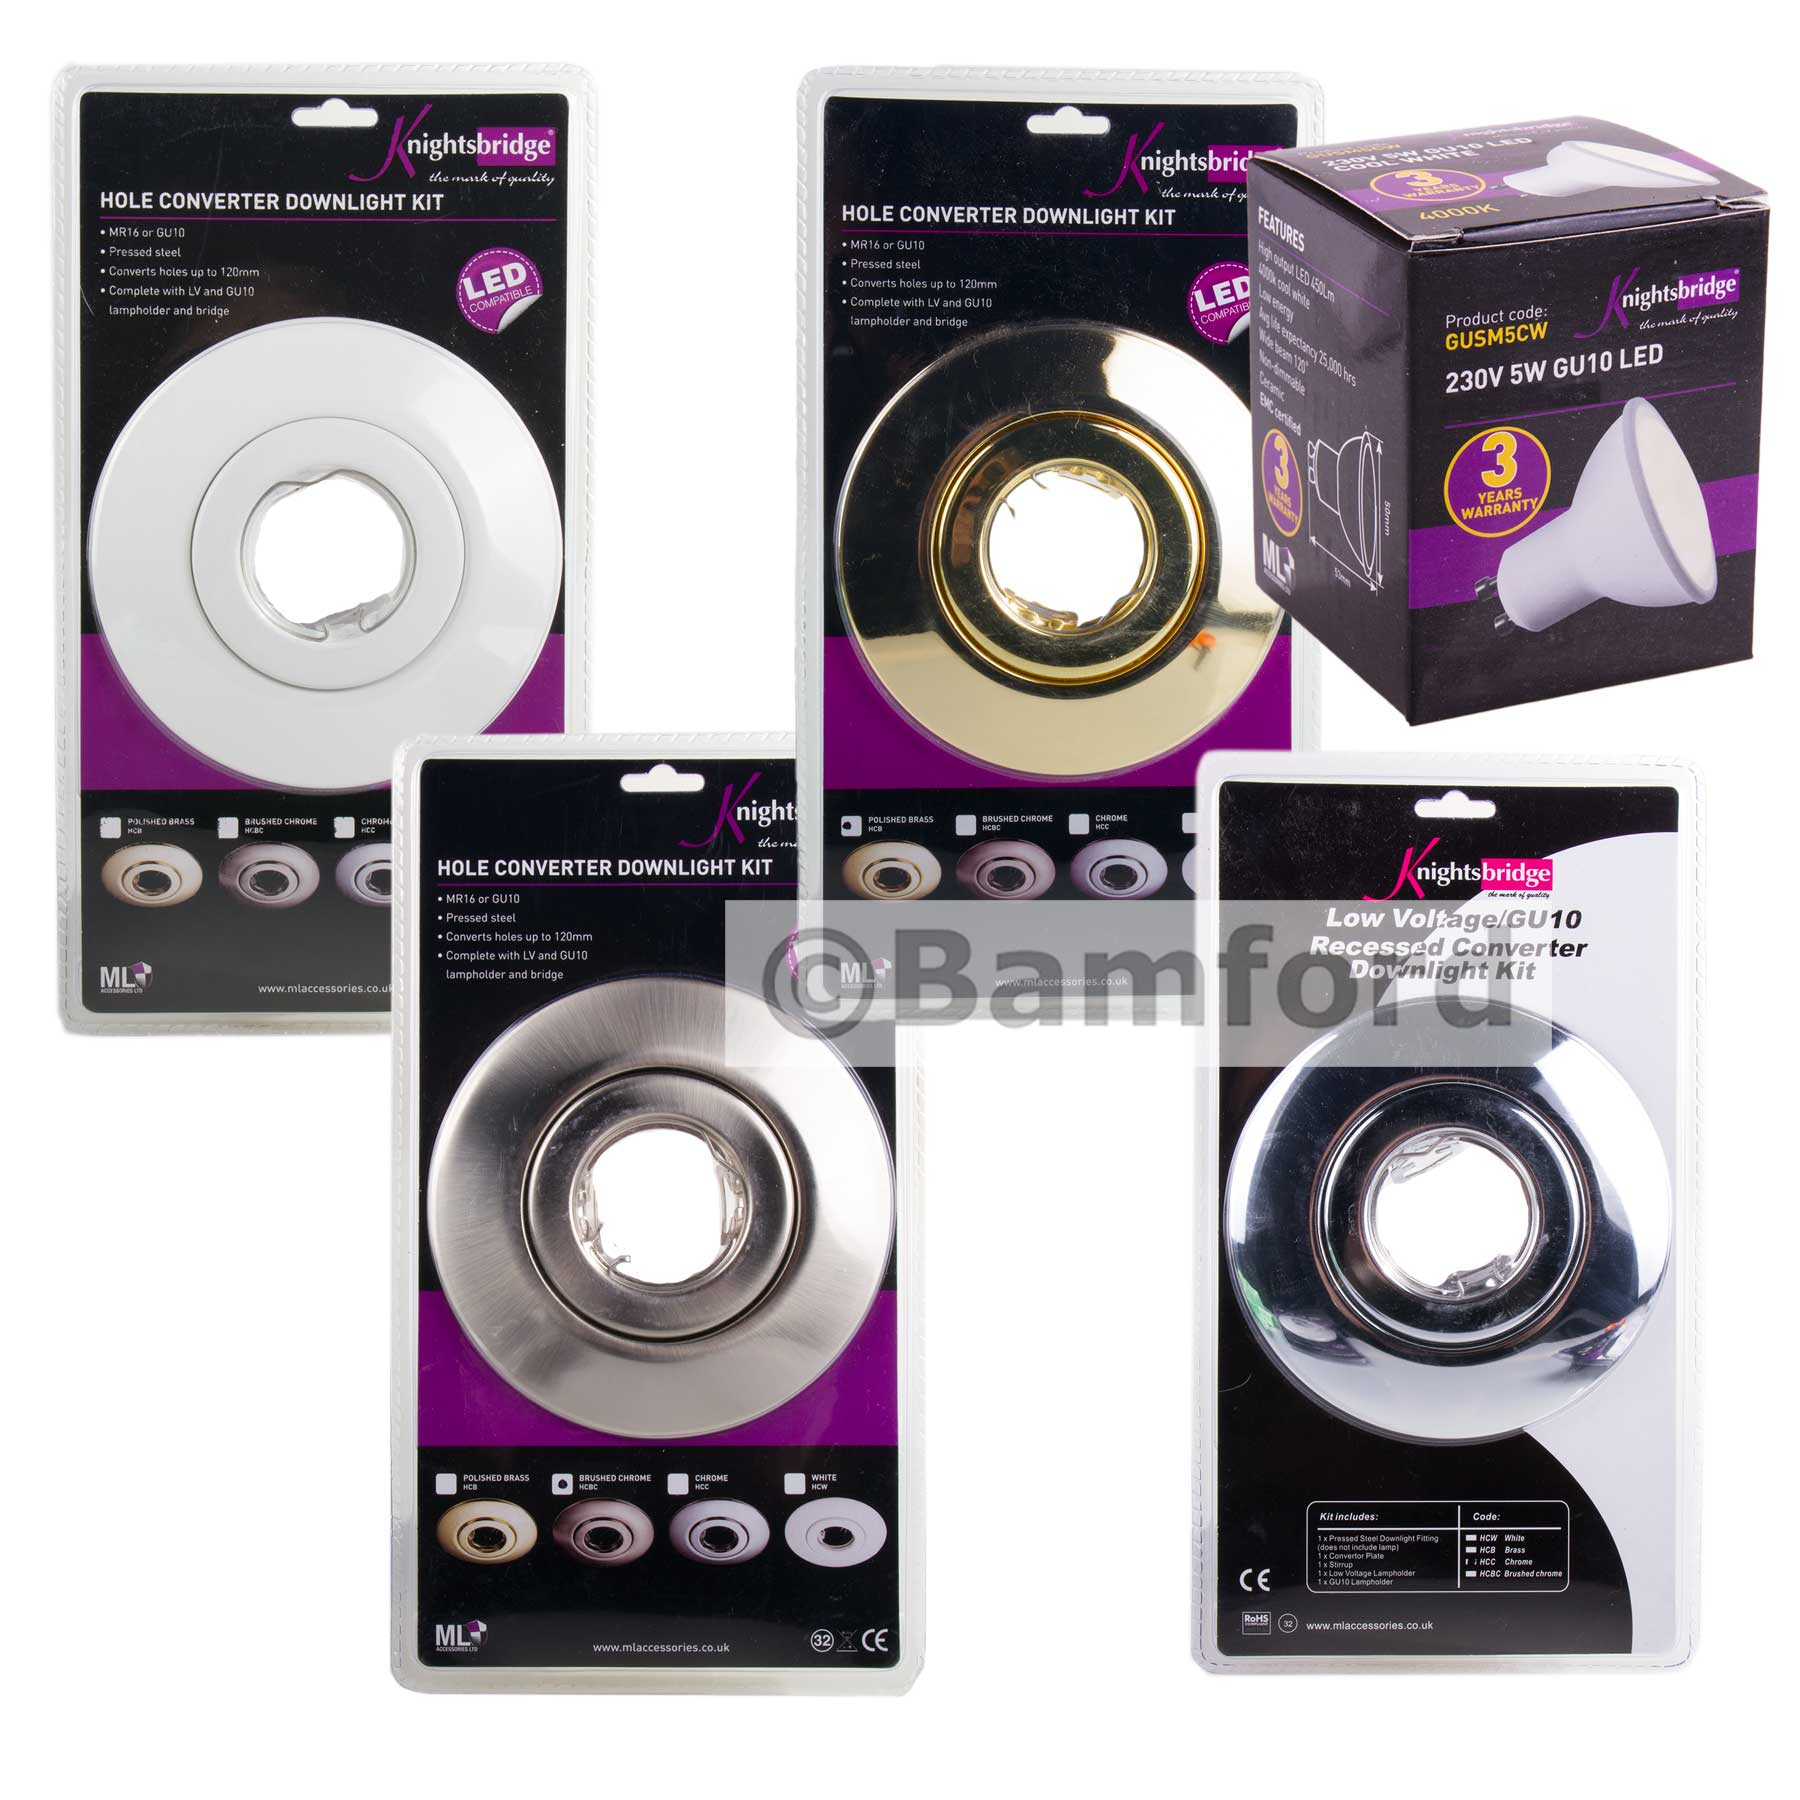 spotlight downlight hole converter conversion kit with 5w gu10 lamp bulb set ebay. Black Bedroom Furniture Sets. Home Design Ideas